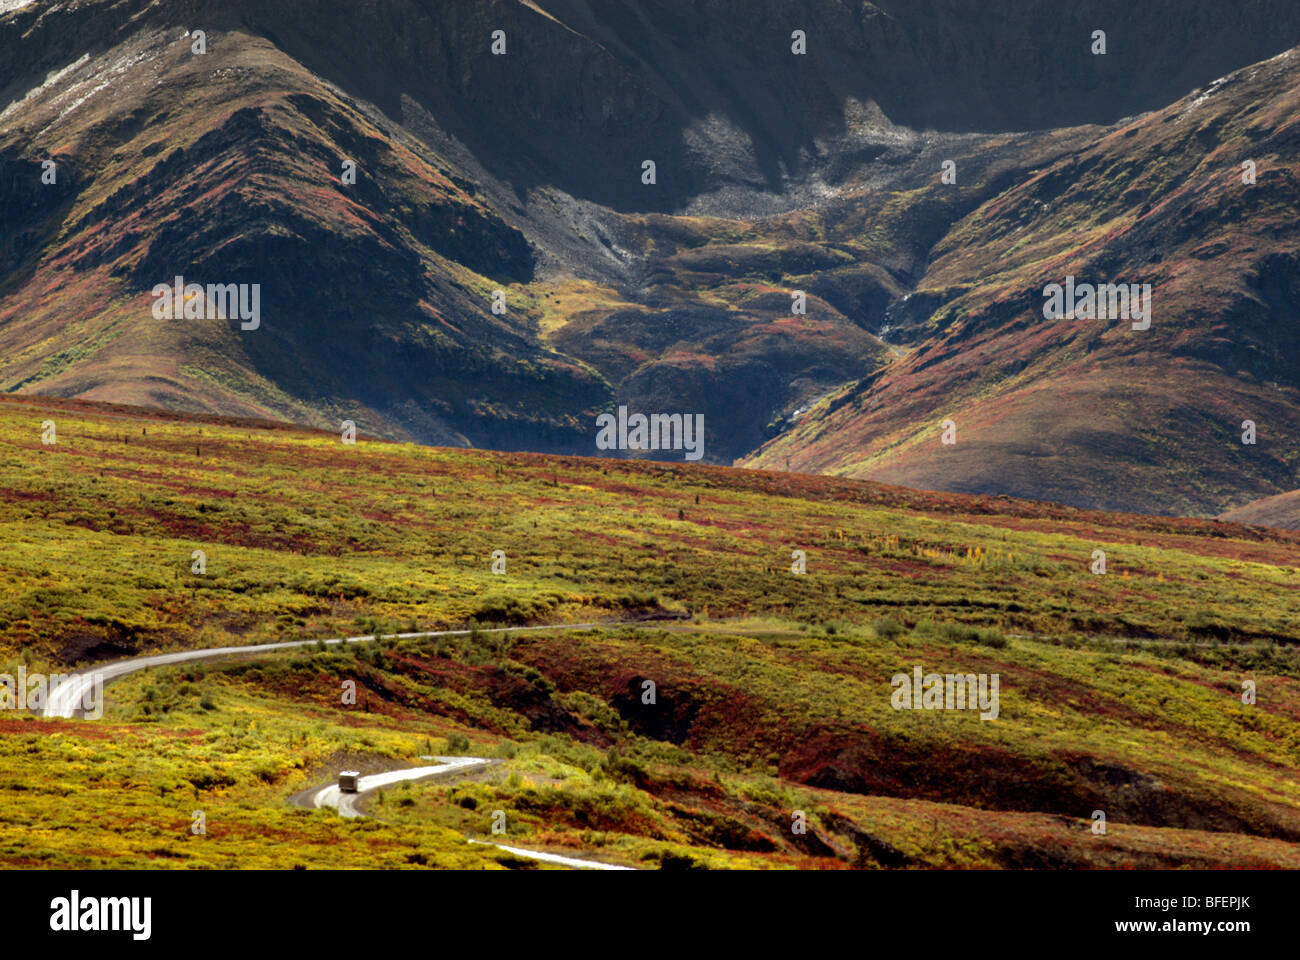 Dempster Highway, Tombstone Territorial Park, Yukon Territory, Canada - Stock Image